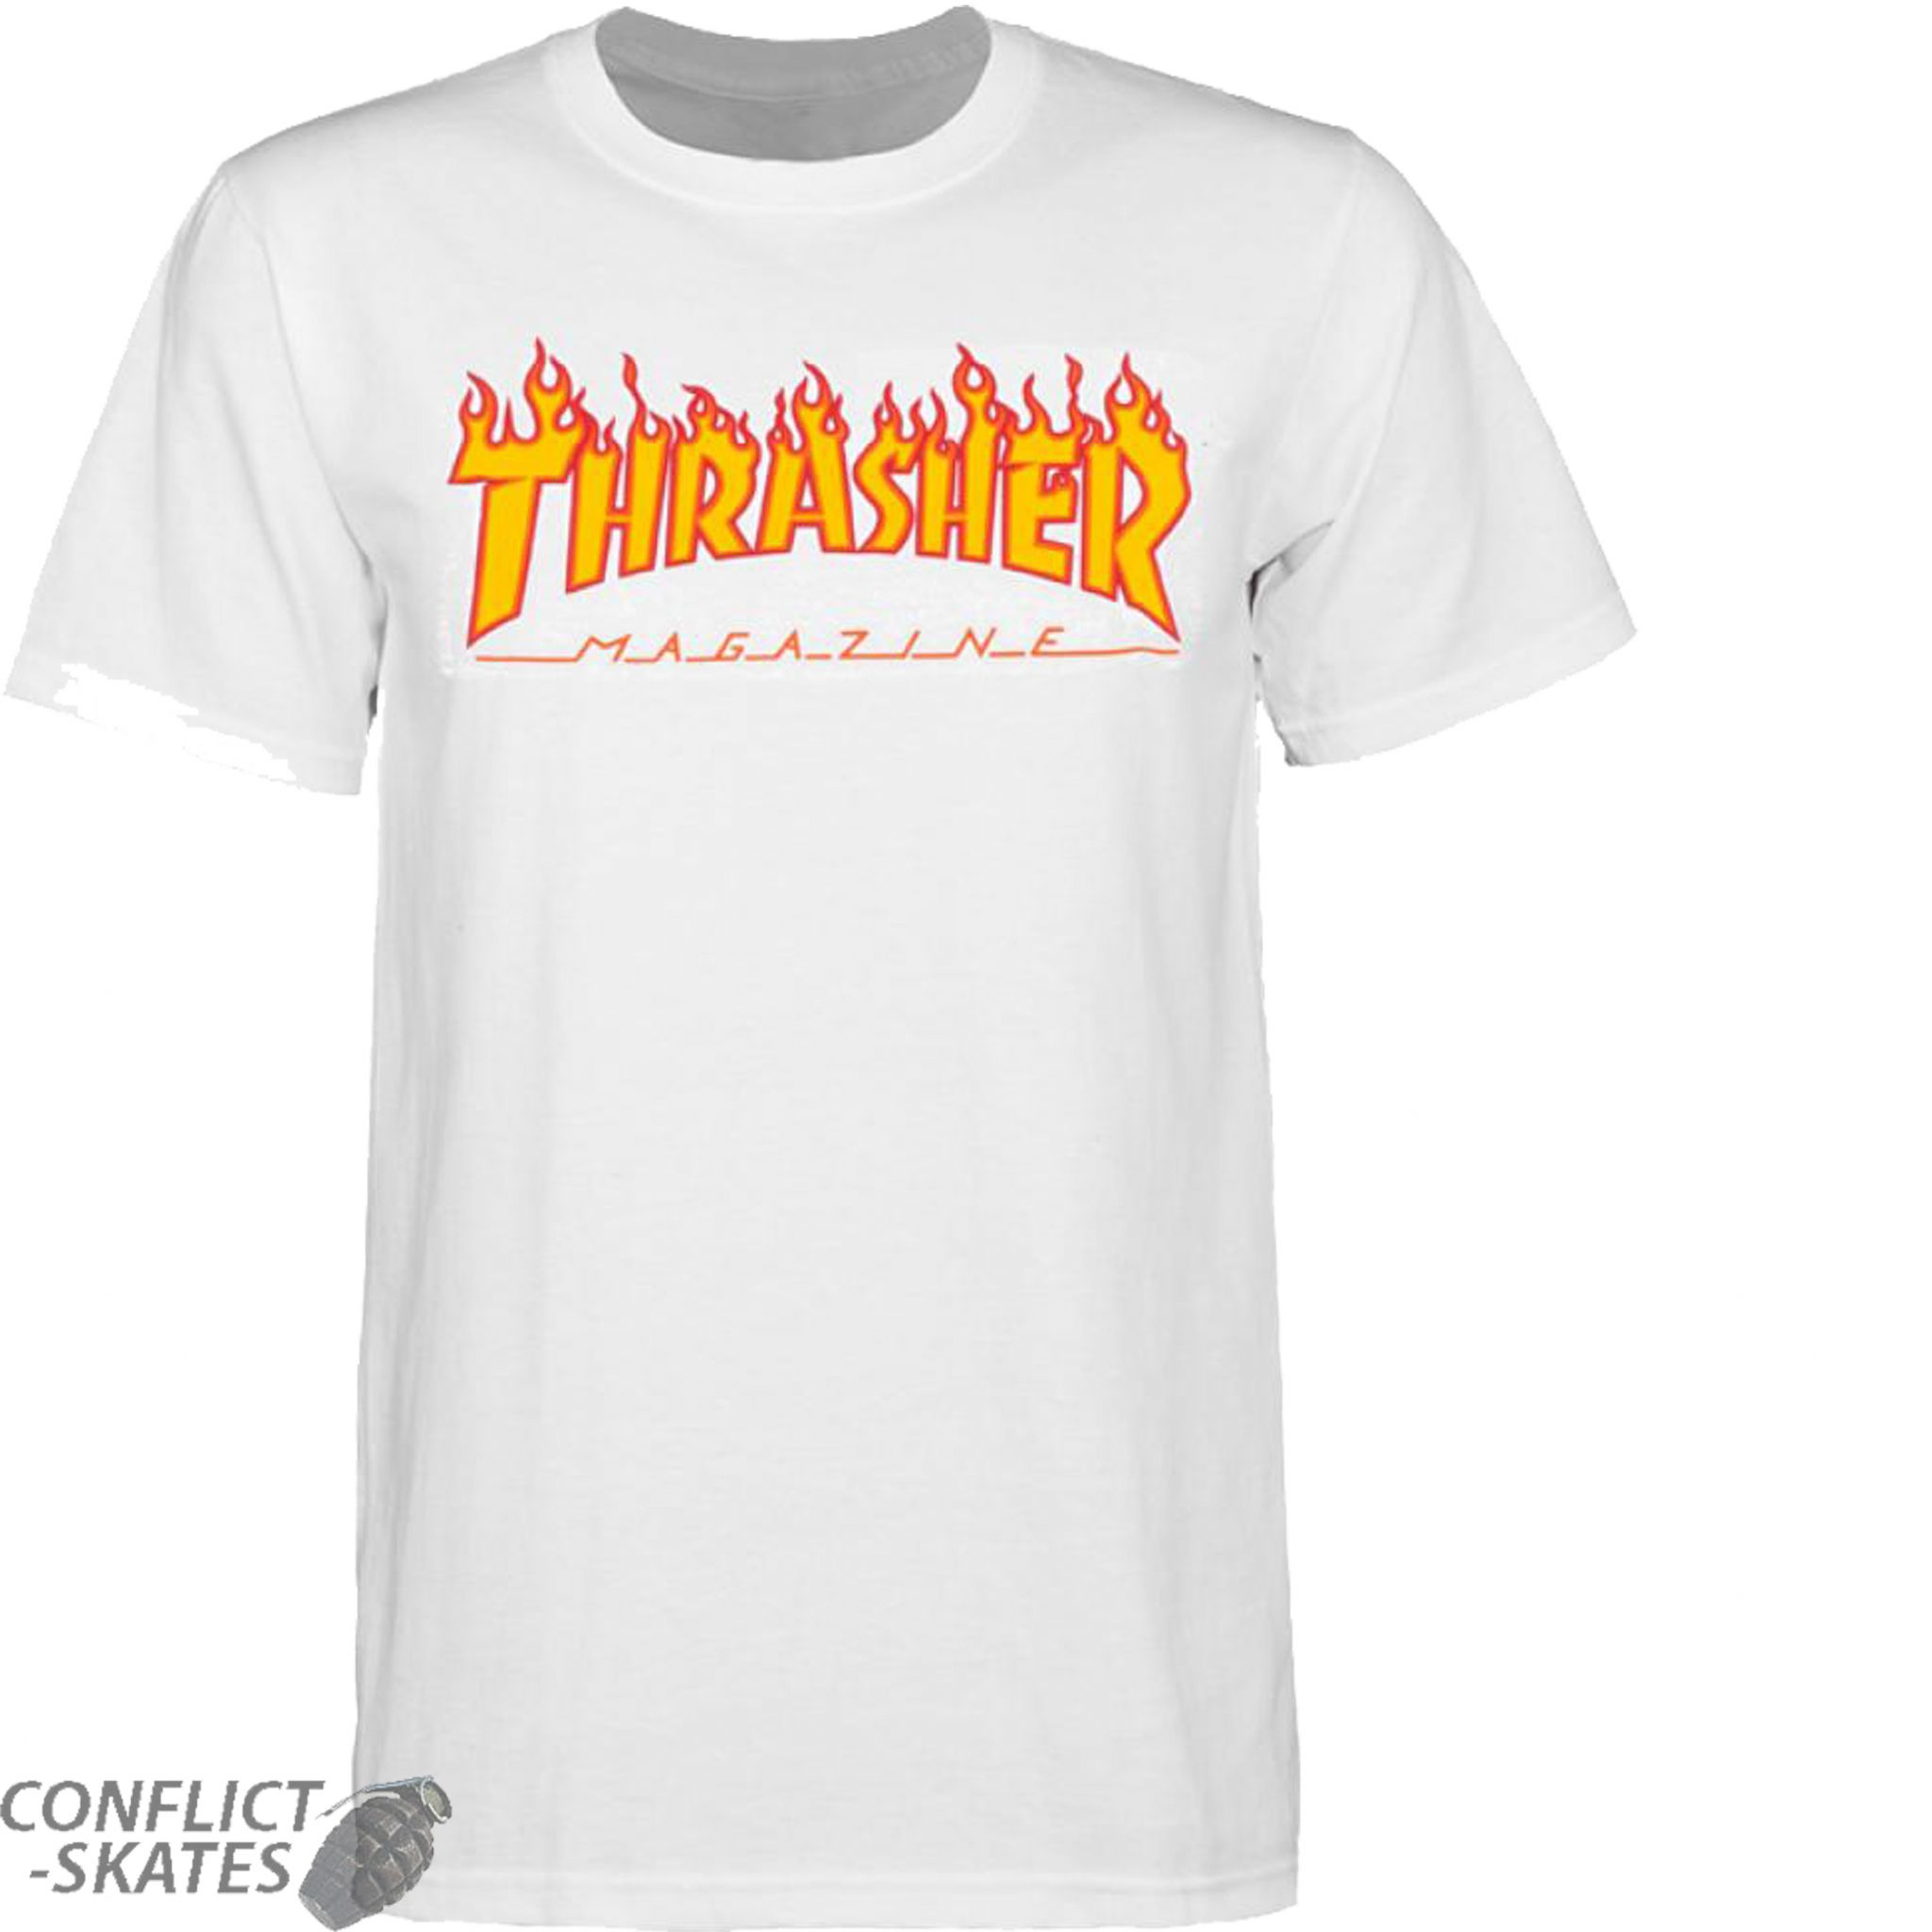 ec91807359b2 THRASHER MAGAZINE Flame Logo Skateboard T-Shirt White S M L or XL